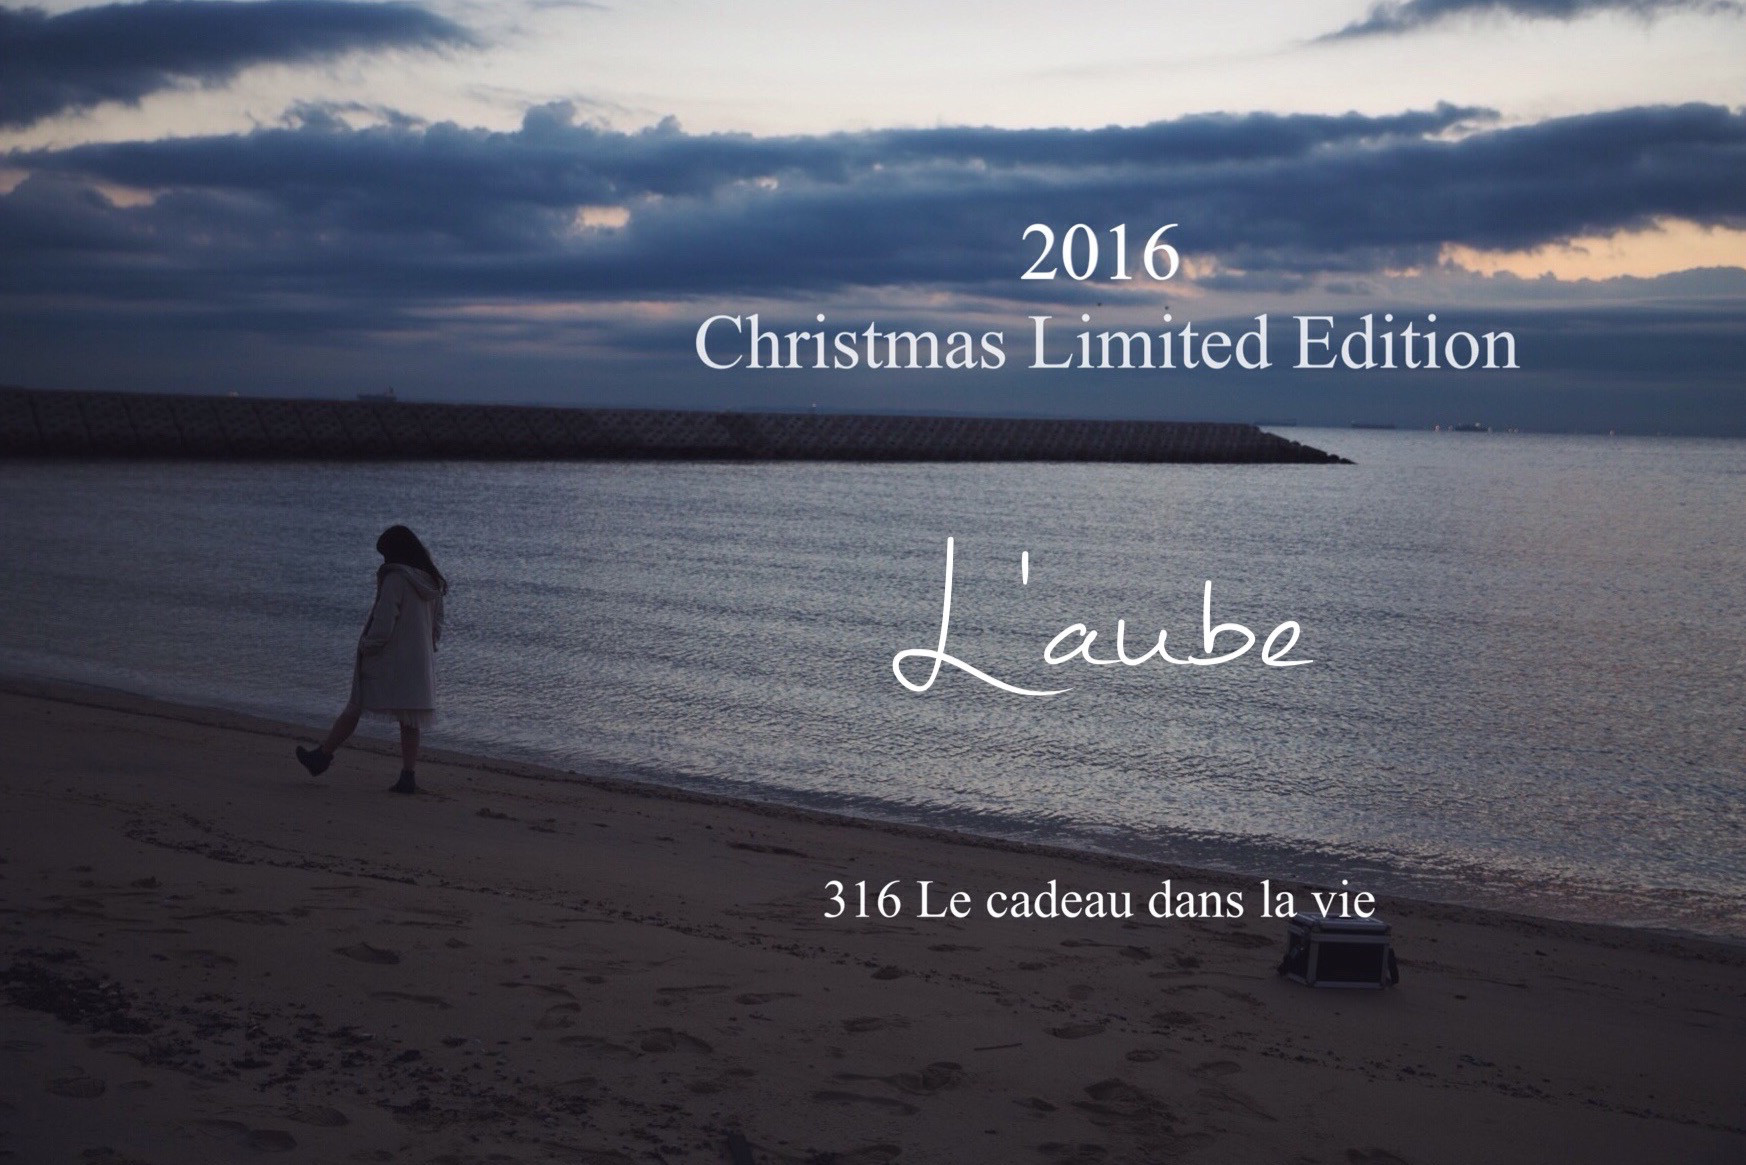 2016 Chiristmas Limited Edition Style Book